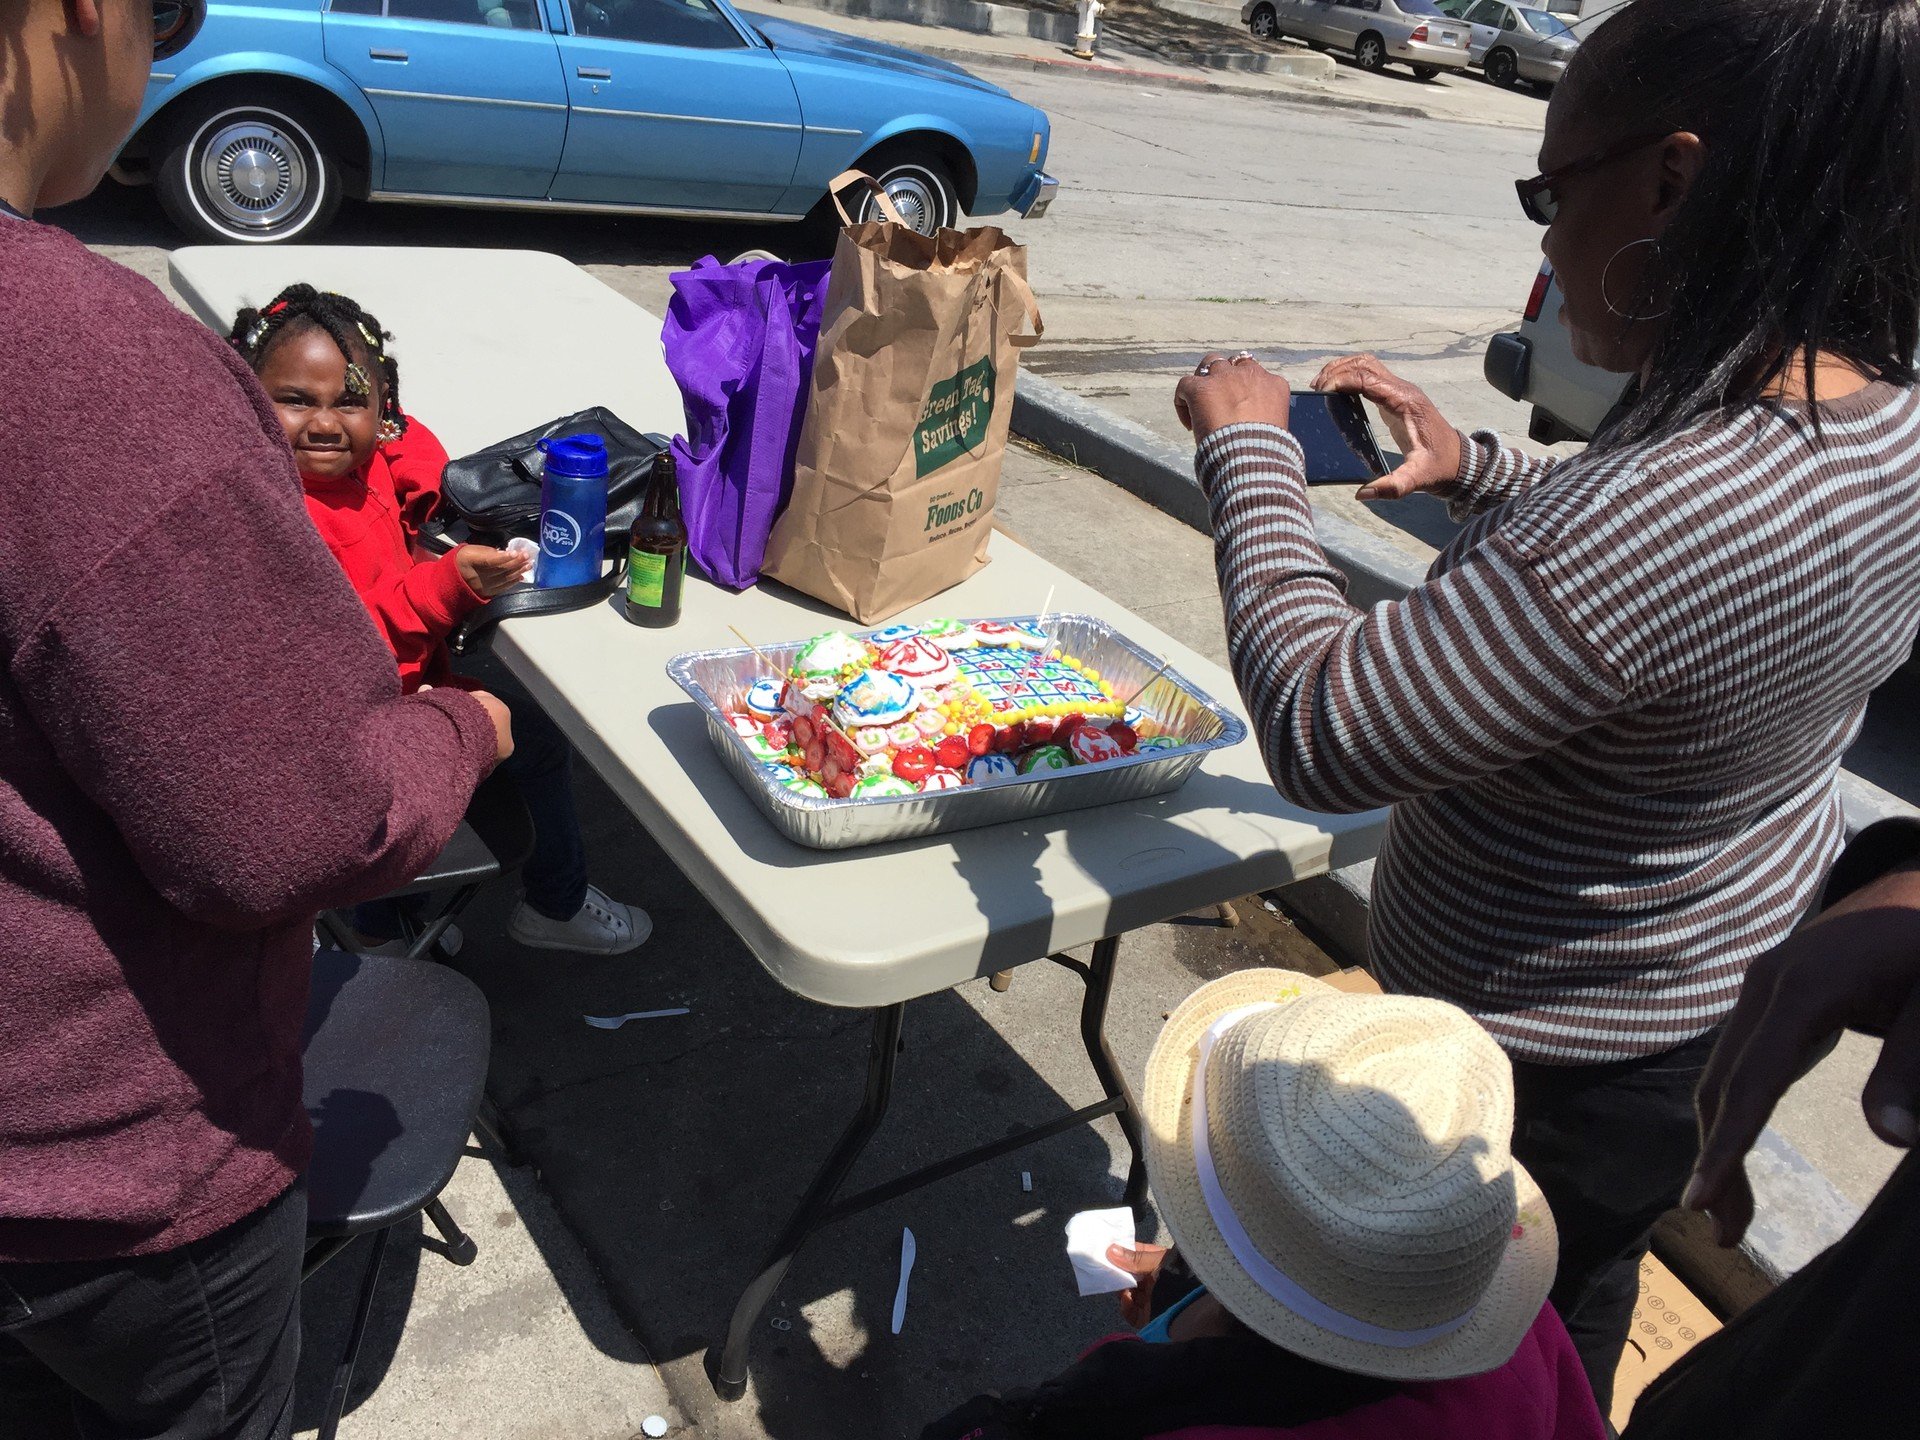 Residents admire a 'Bingo'-themed birthday cake on display at a July 26 barbecue in Potrero Terrace.